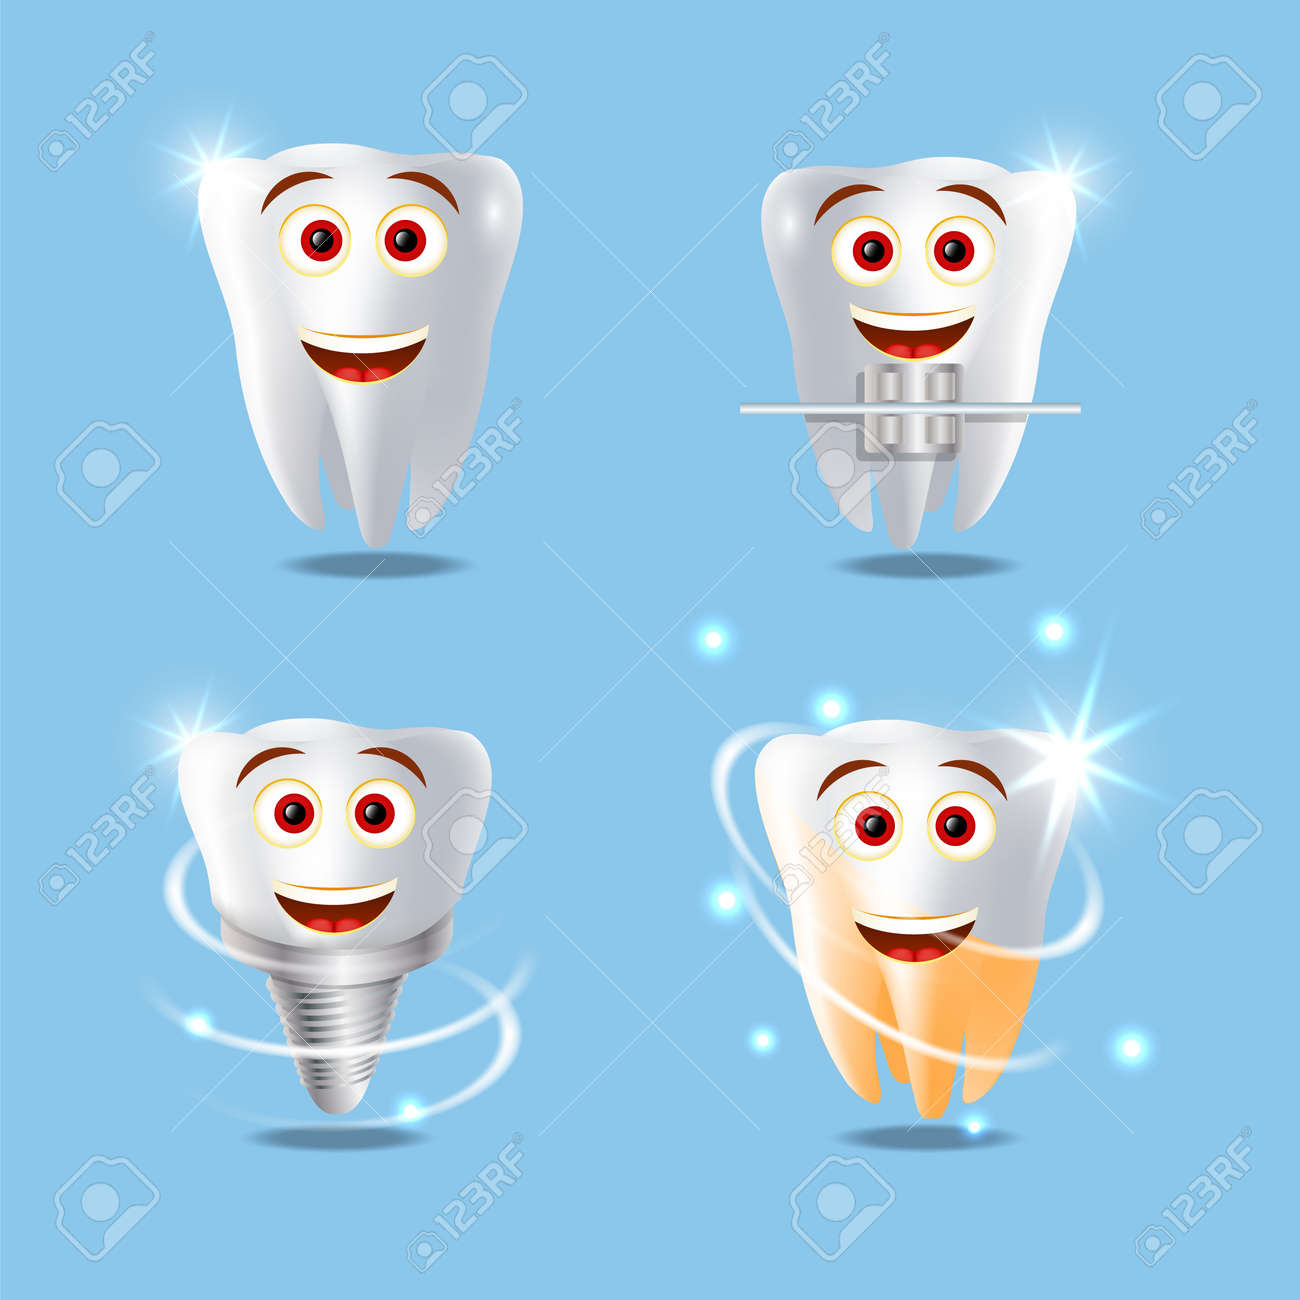 Free stock photo of clipart tooth, dental health, dentist